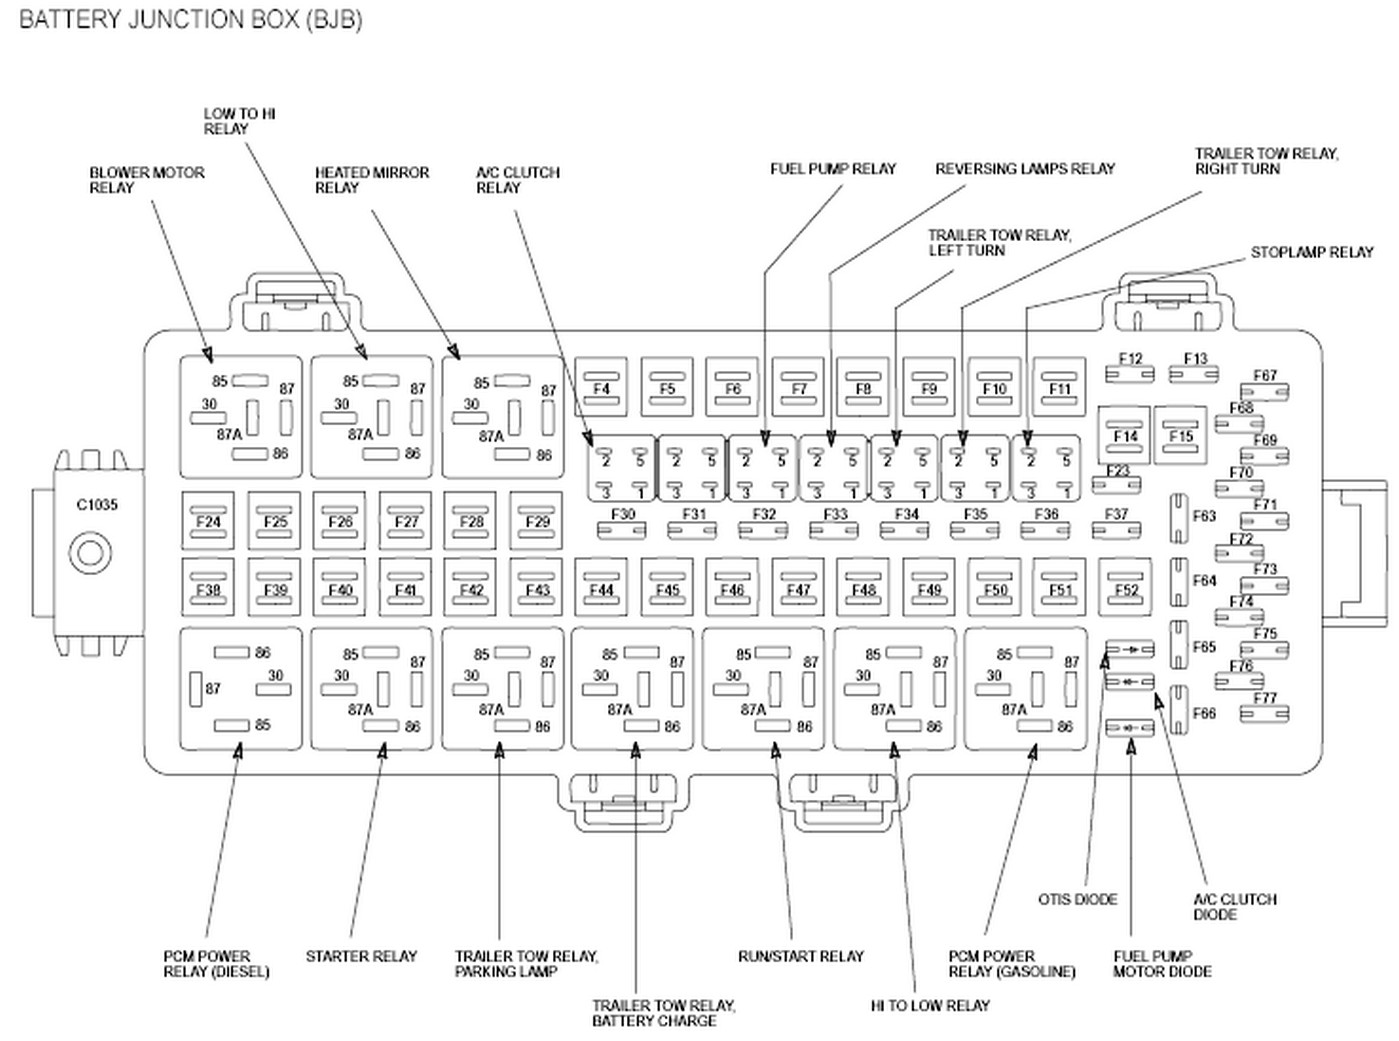 2003 ford f250 super duty fuse box diagram wiring diagrams 2012 F450 Fuse Box Under Hood 2012 f450 fuse box wiring library